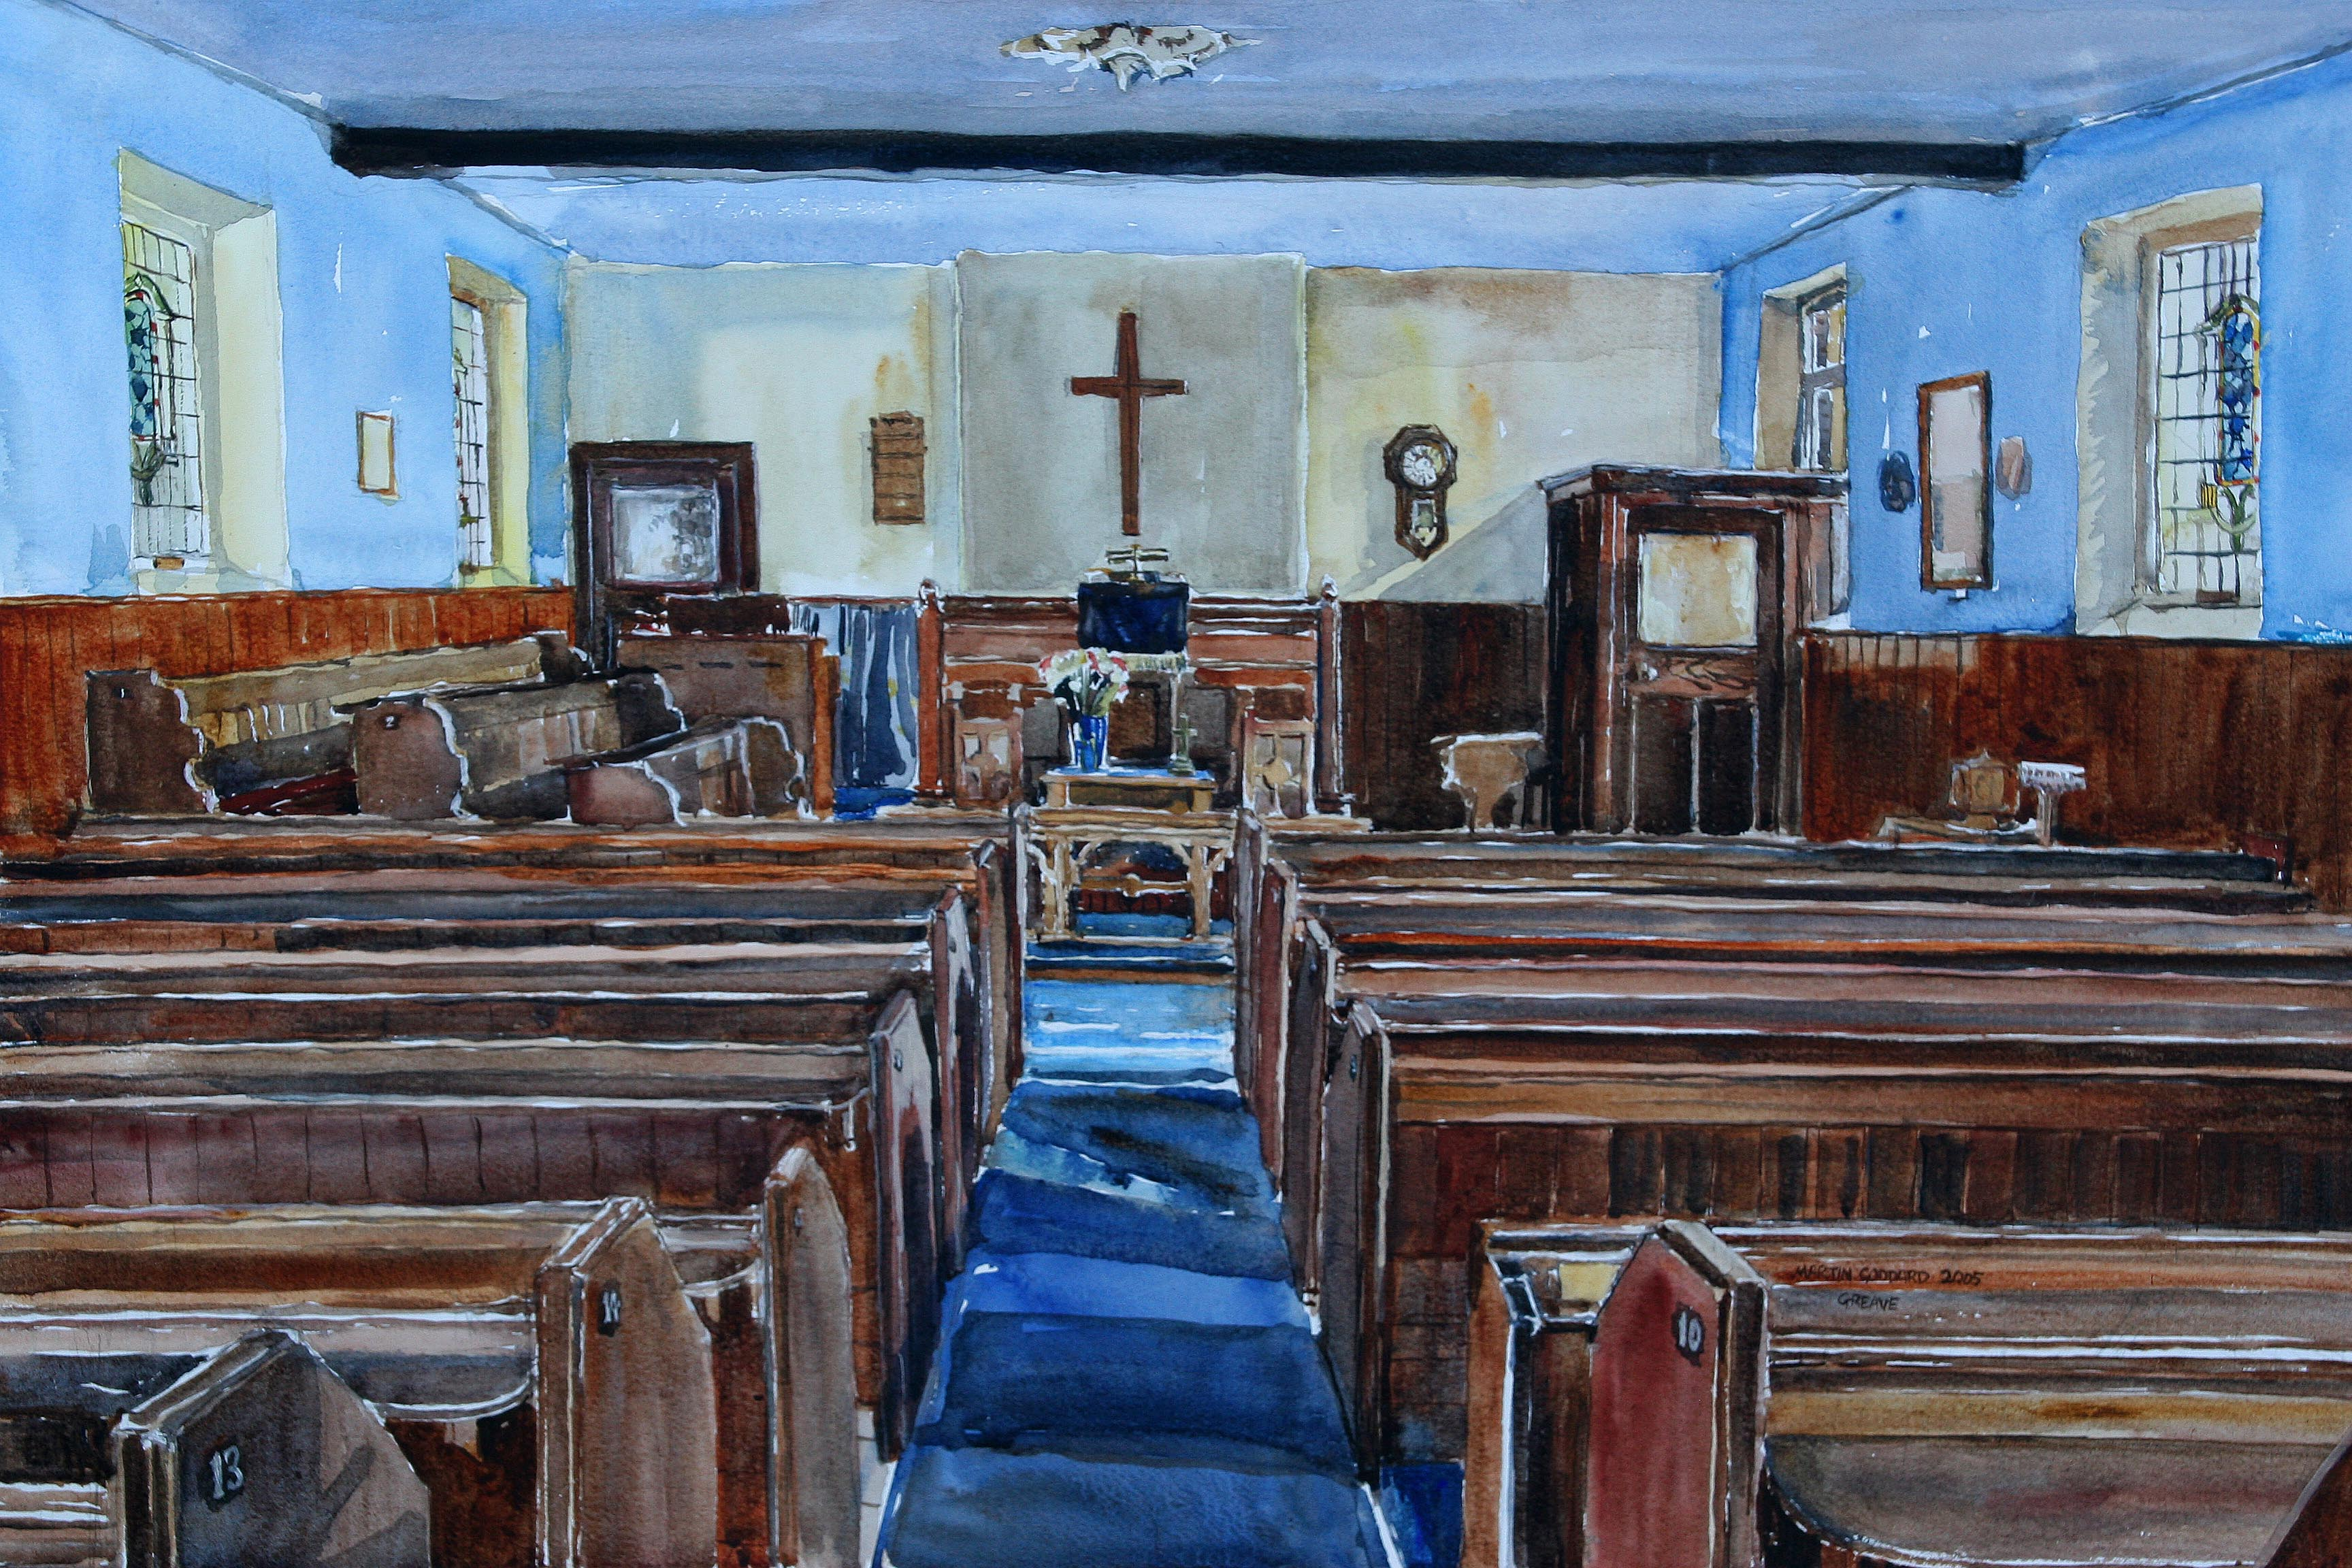 The Old Greave Methodist Church, Interior